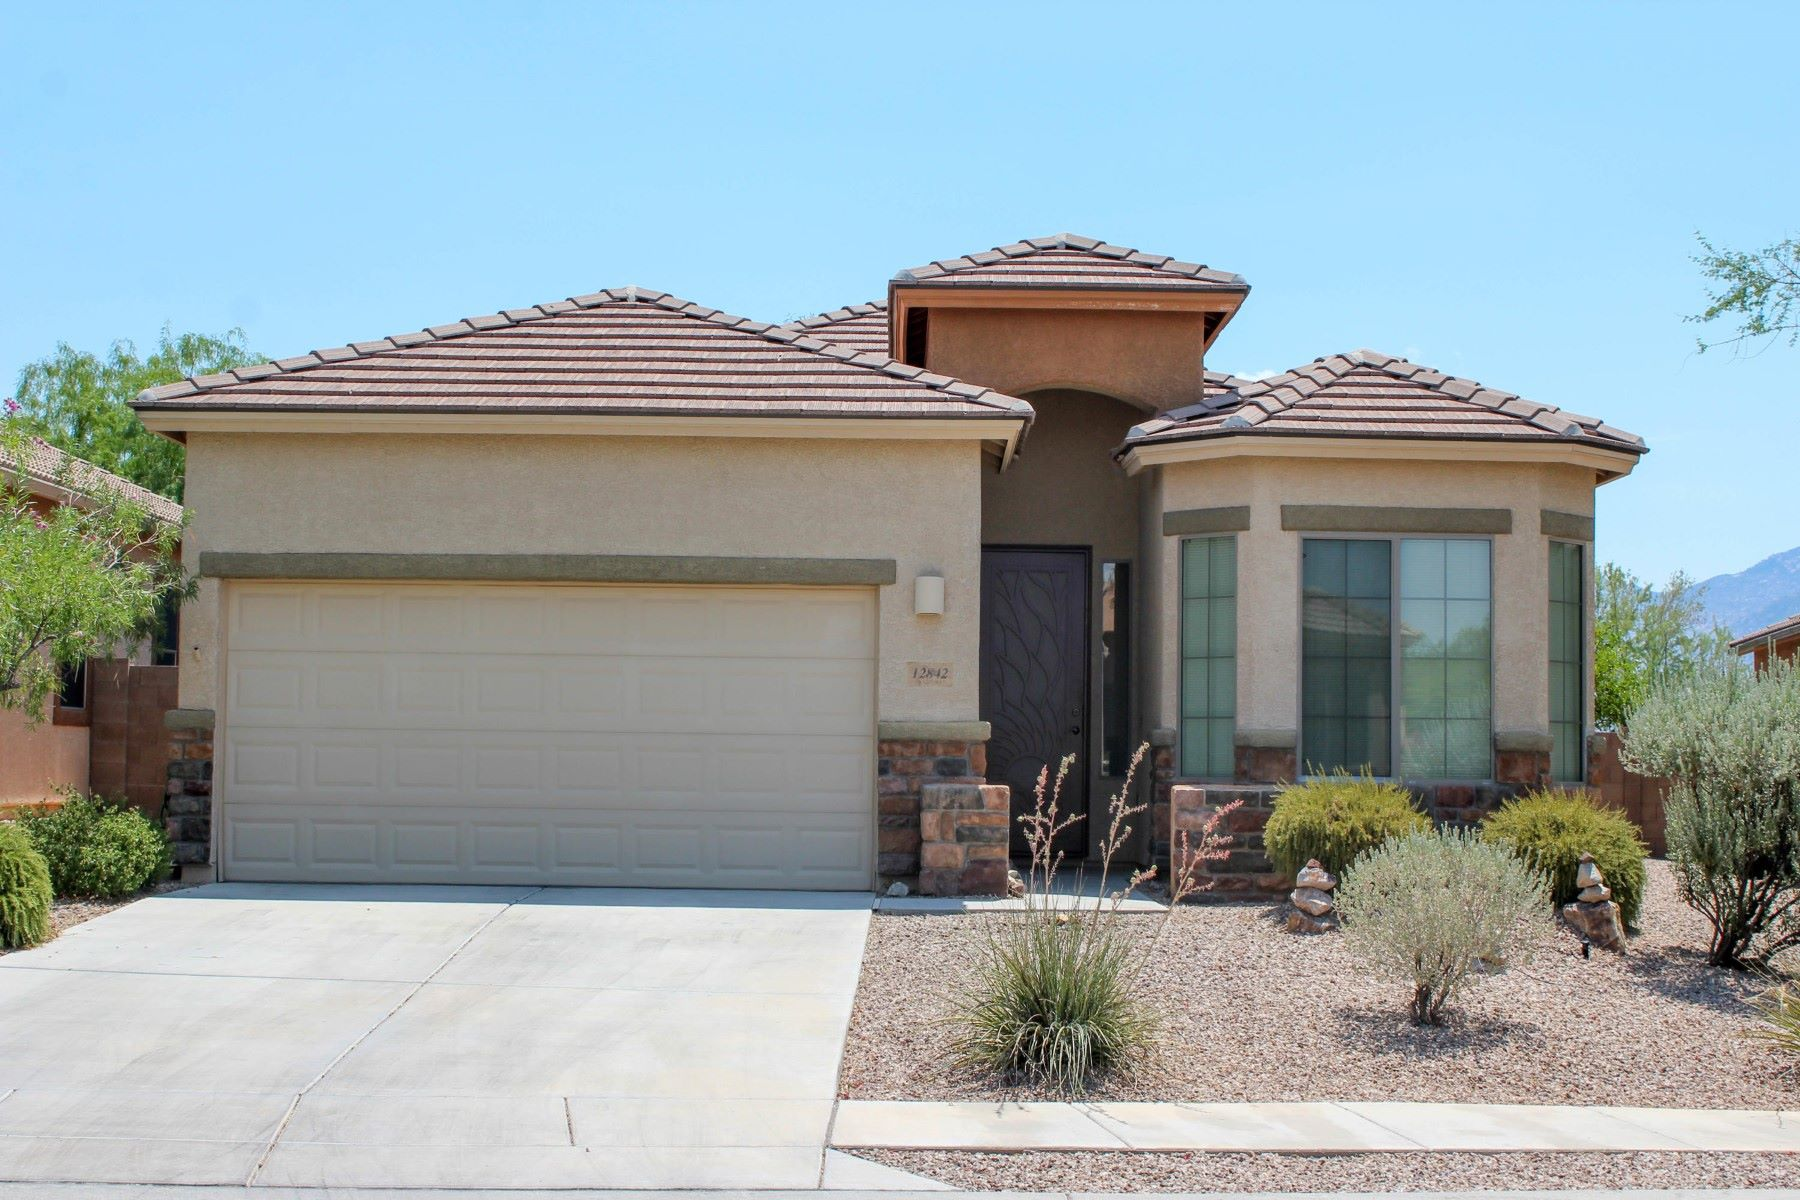 Single Family Home for Sale at Rancho Vistoso 12842 N. Westminster Dr. Oro Valley, Arizona, 85755 United States